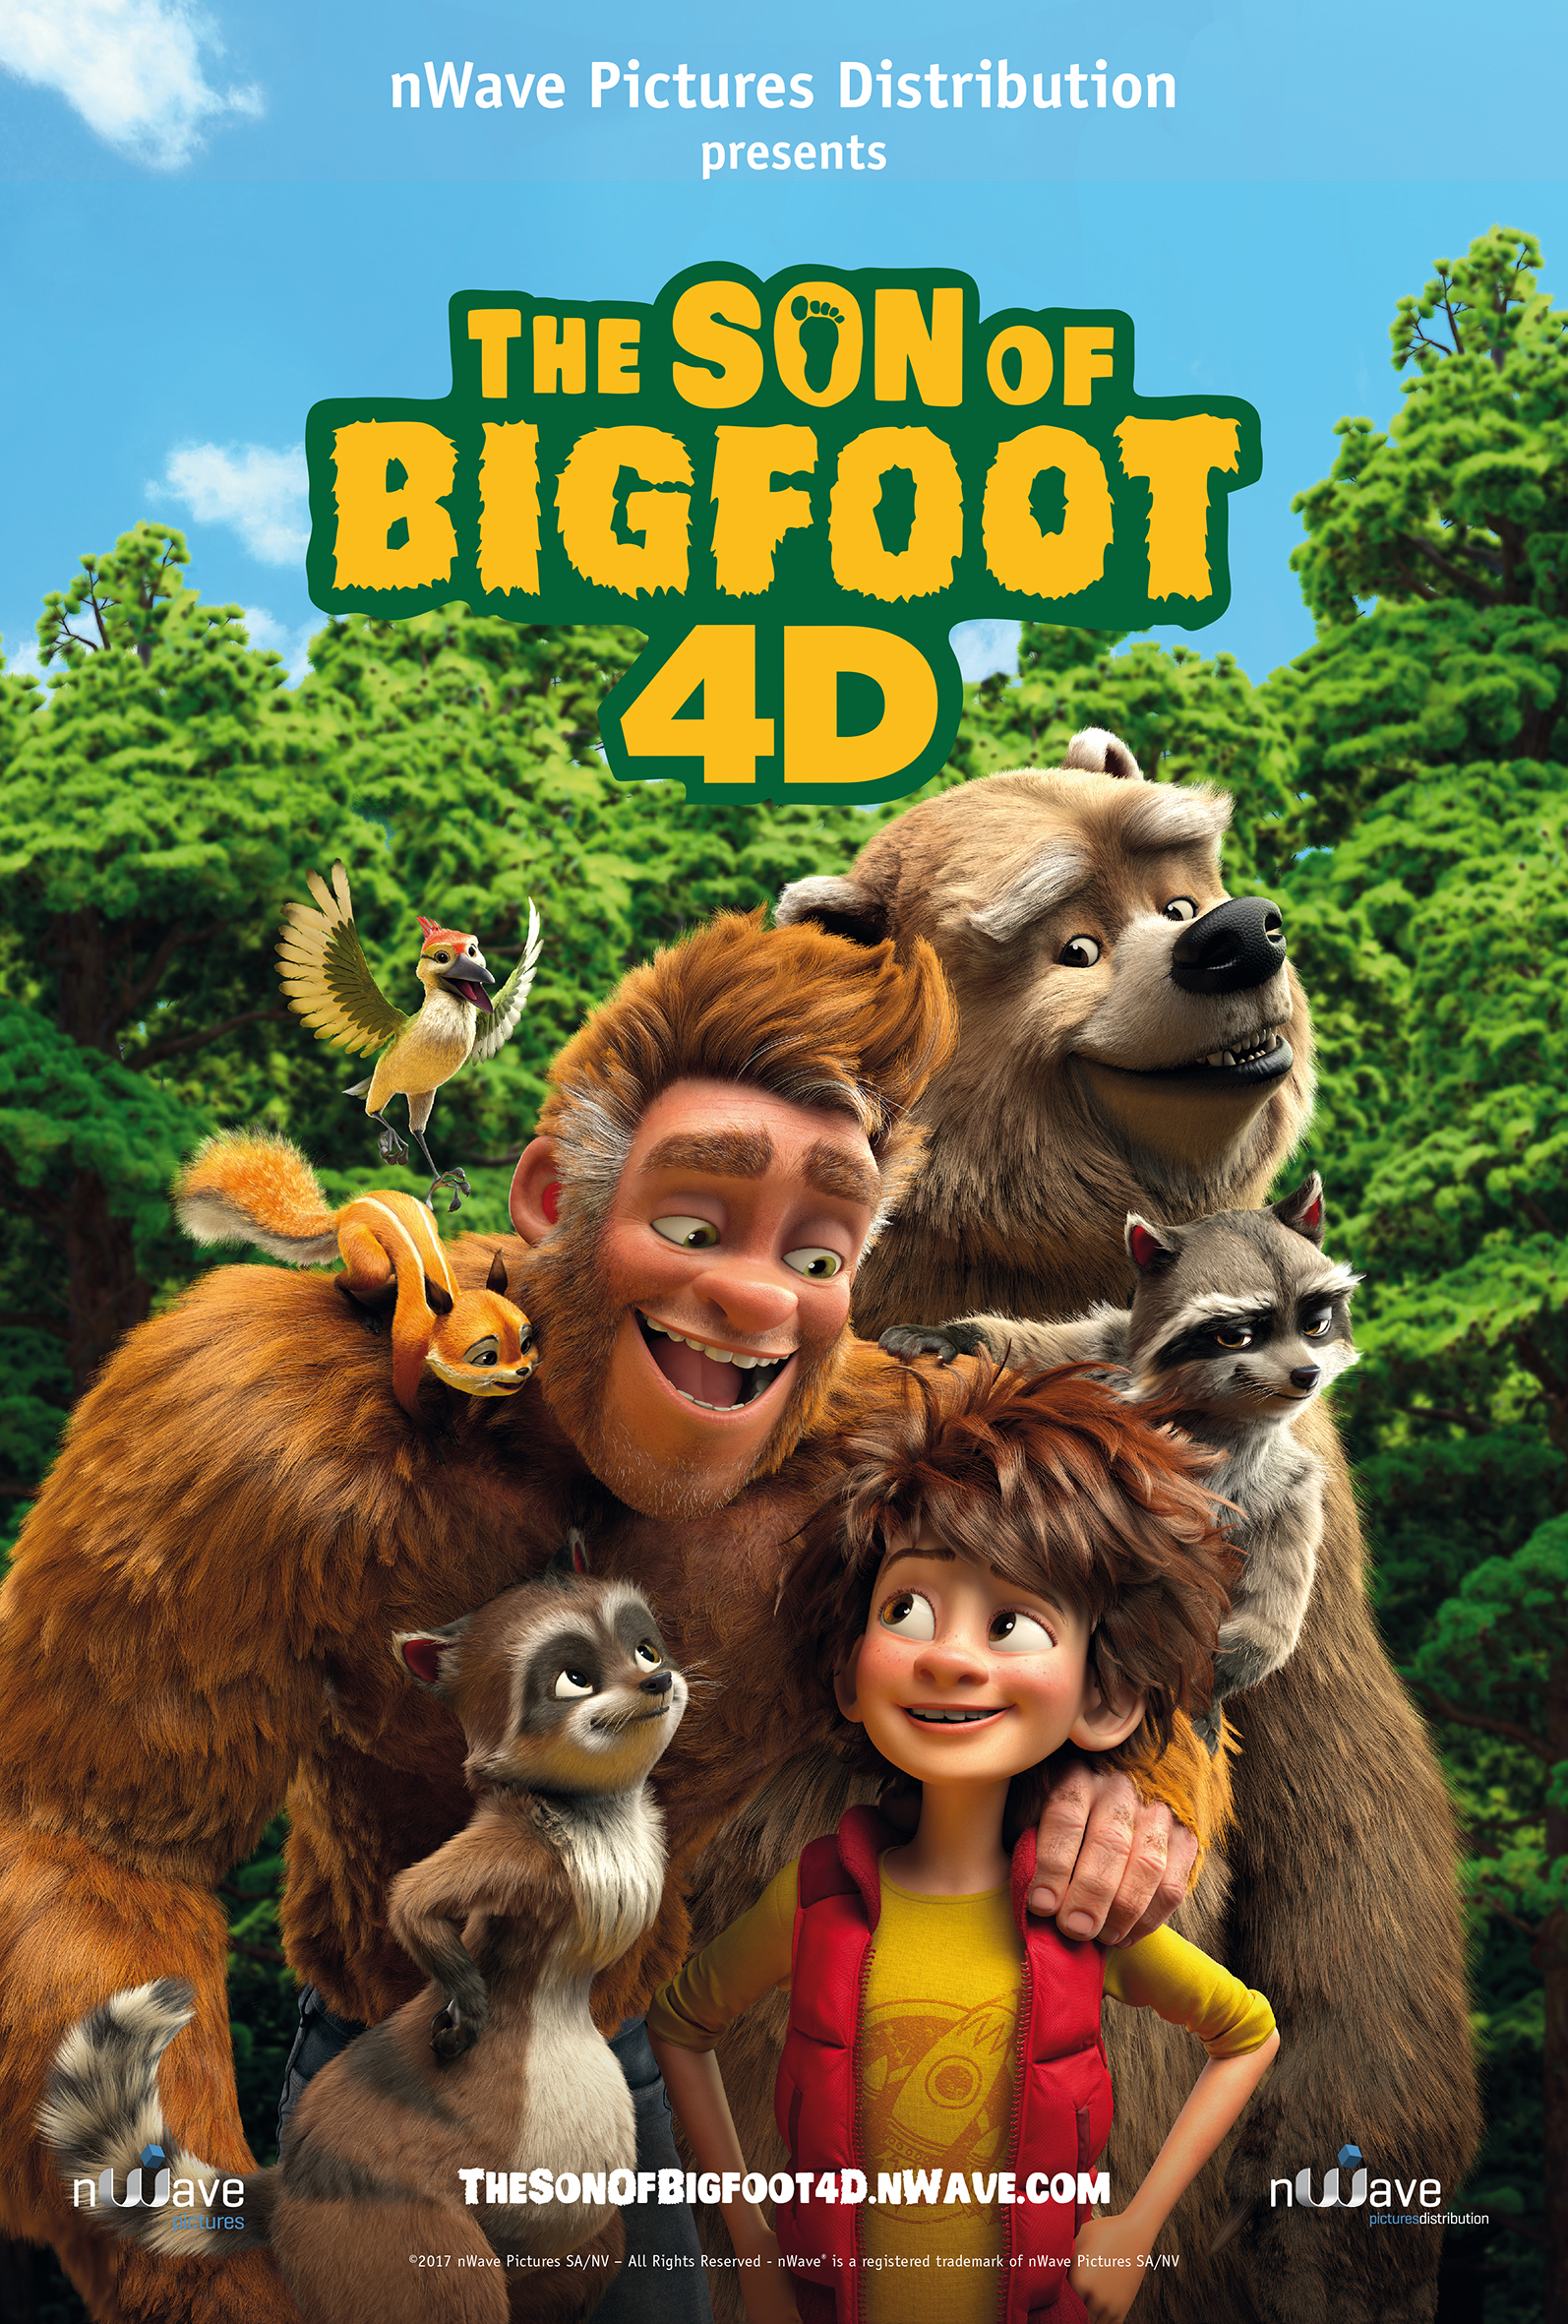 The Son Of Bigfoot Or Junior Is A Belgian And French CGI Animated Film That Was Released On 11 August 2017 In Several Countries